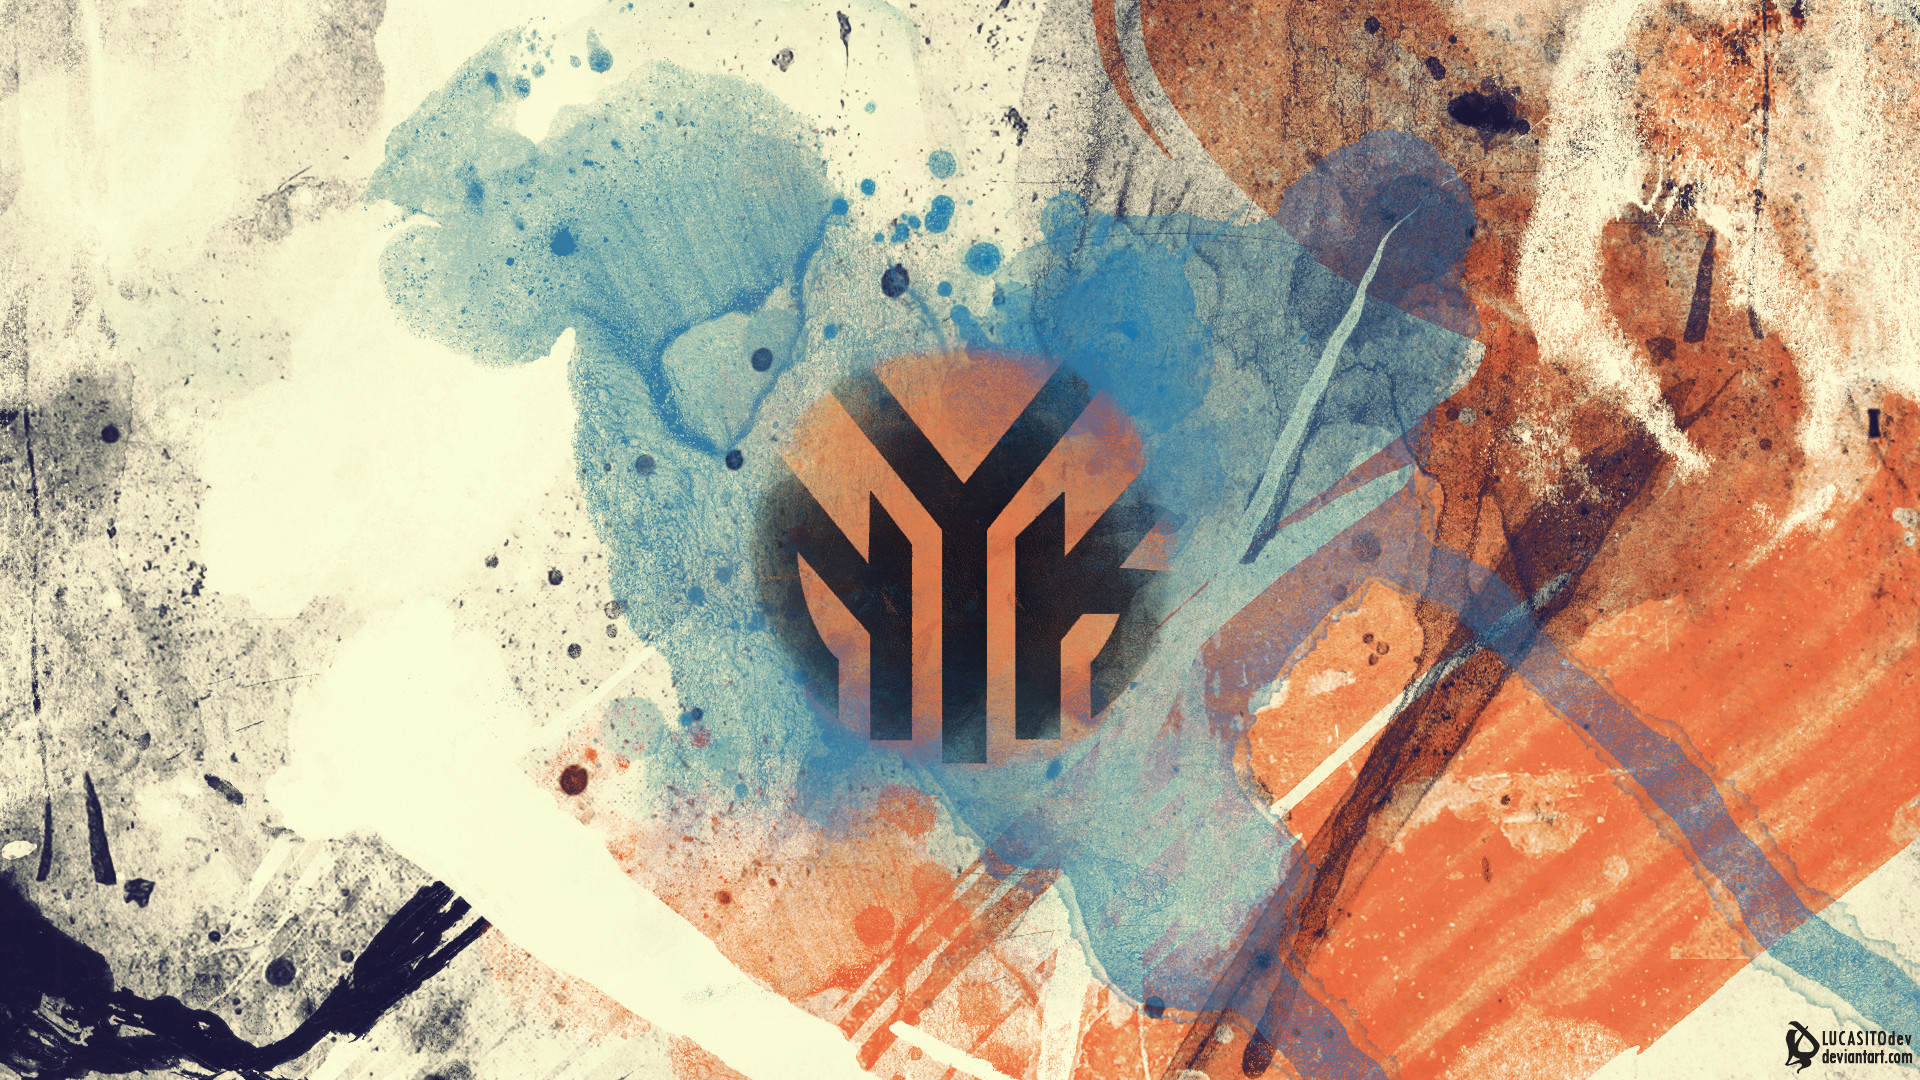 1920x1080 New York Knicks Wallpaper by lucasitodesign New York Knicks Wallpaper by  lucasitodesign